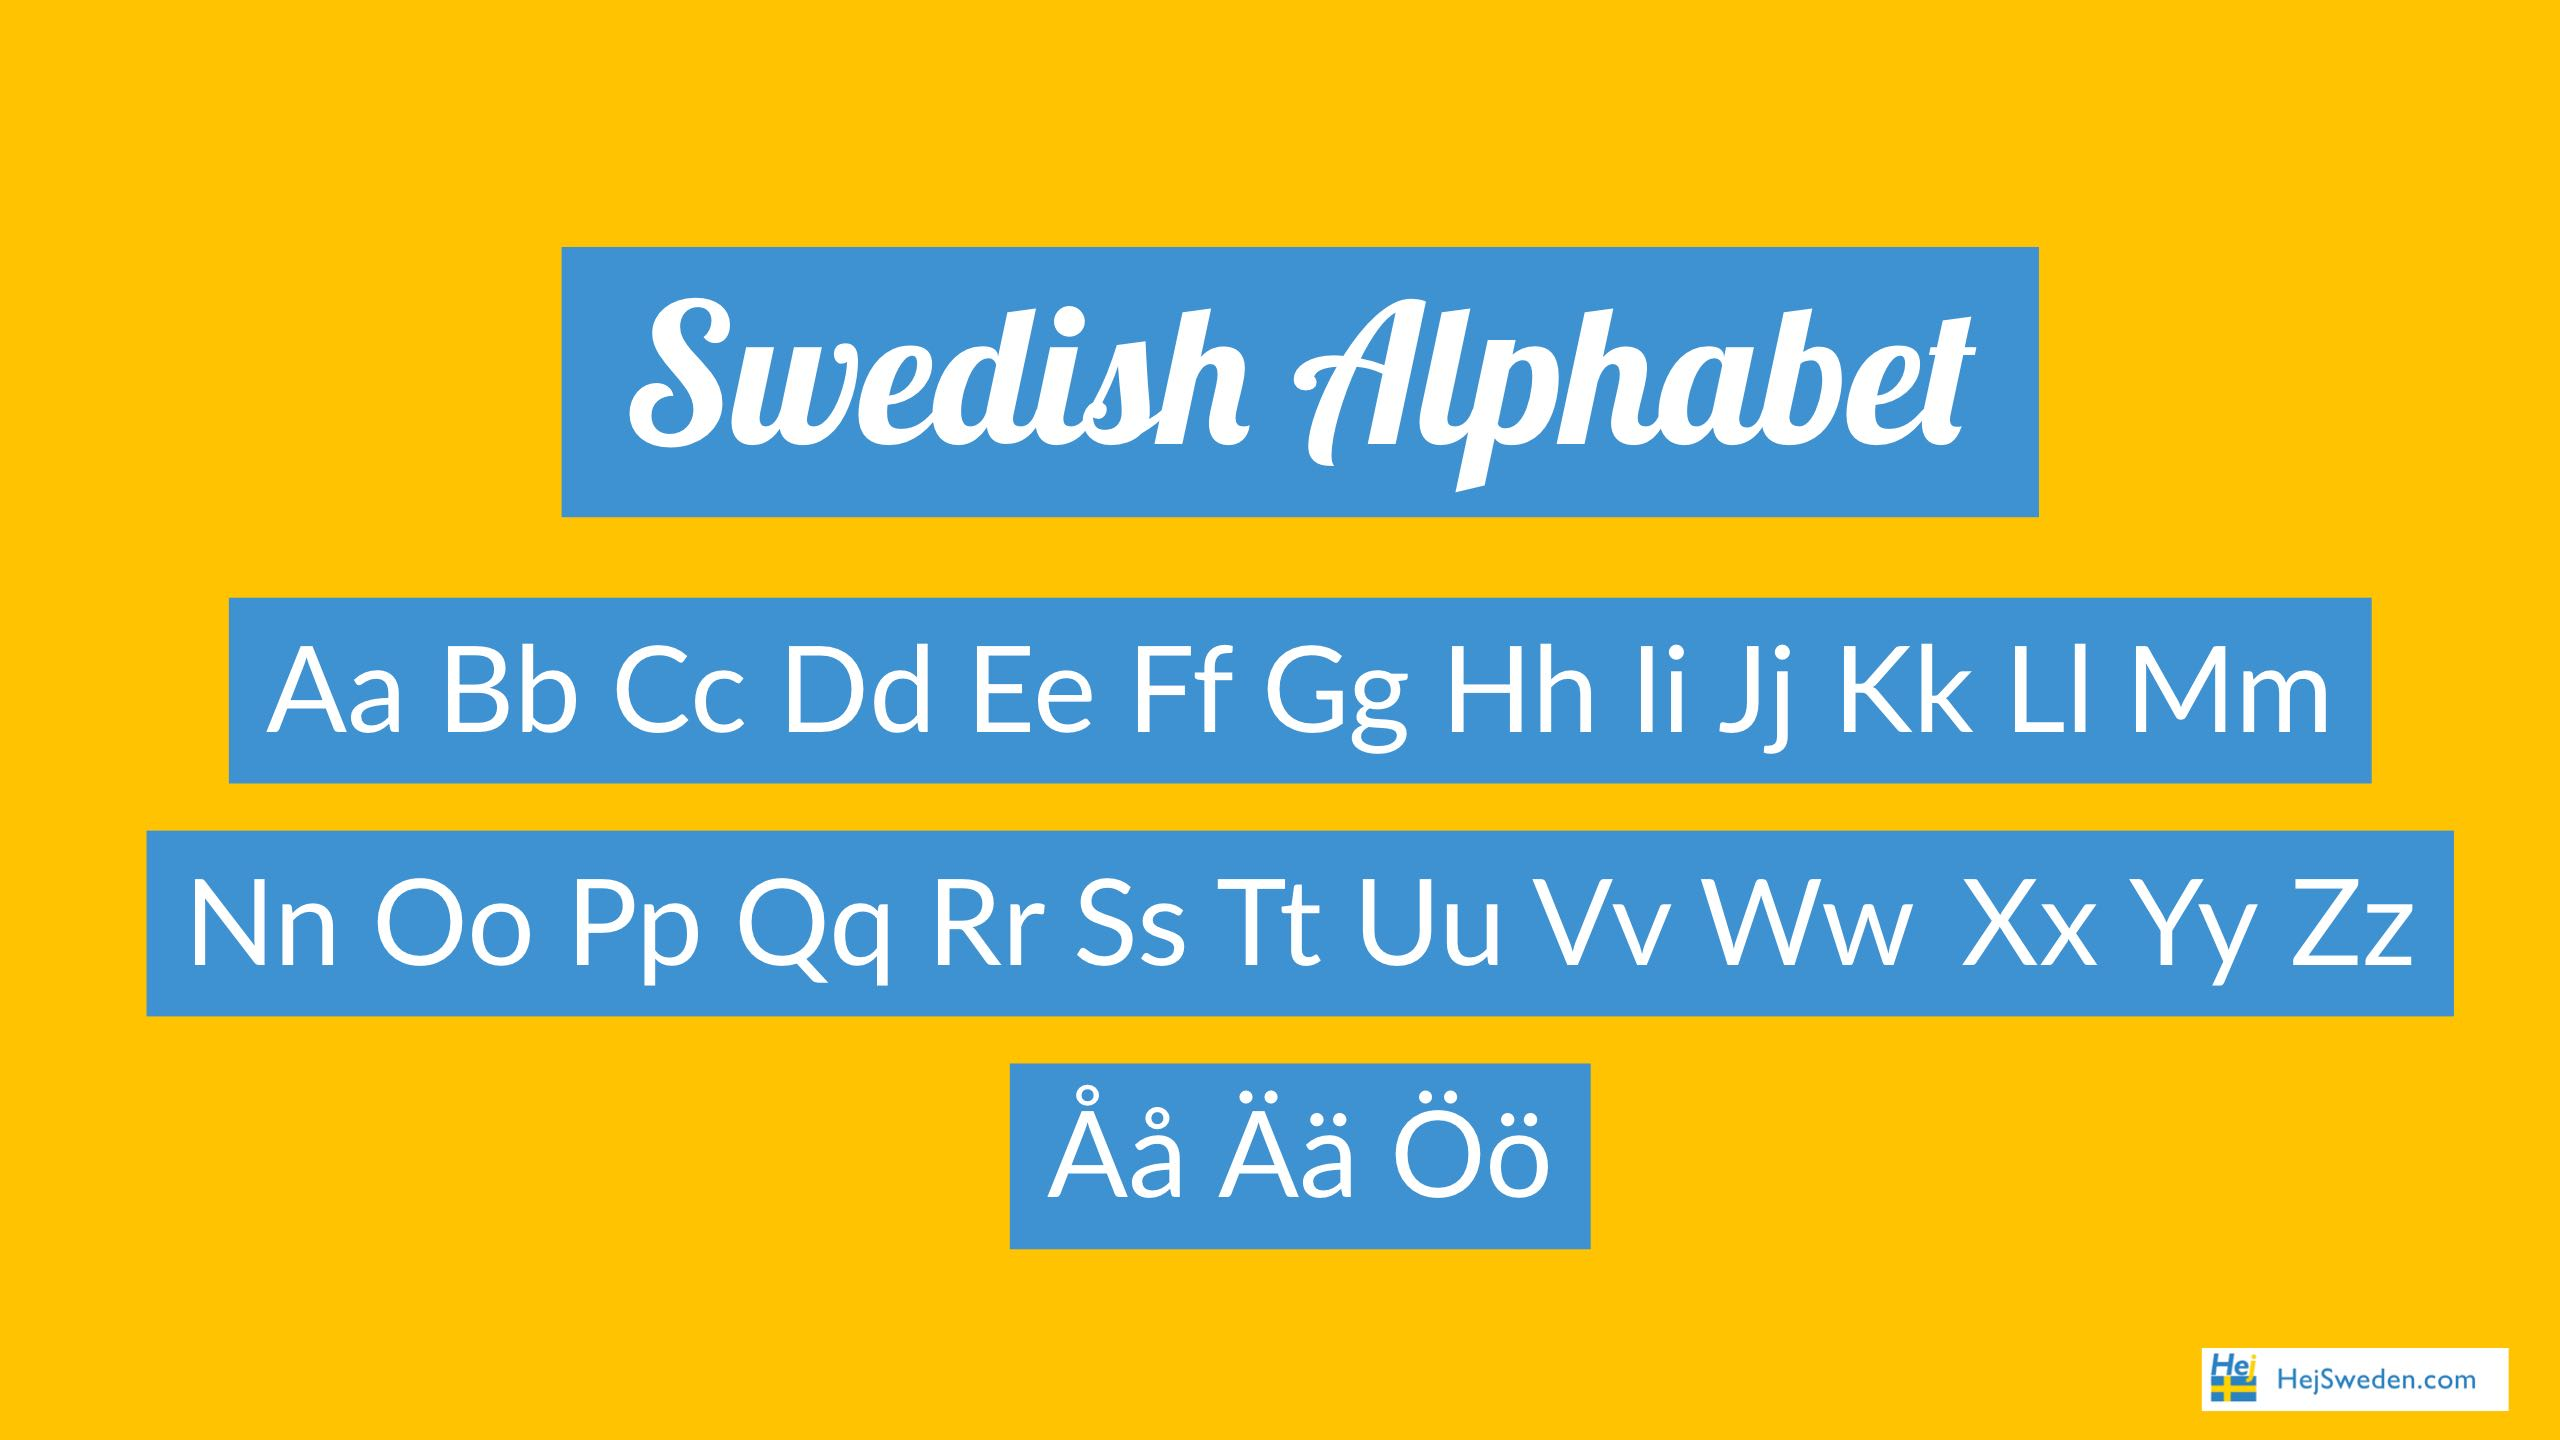 Swedish Alphabet How To Pronounce Each Letter Correctly Hej Sweden